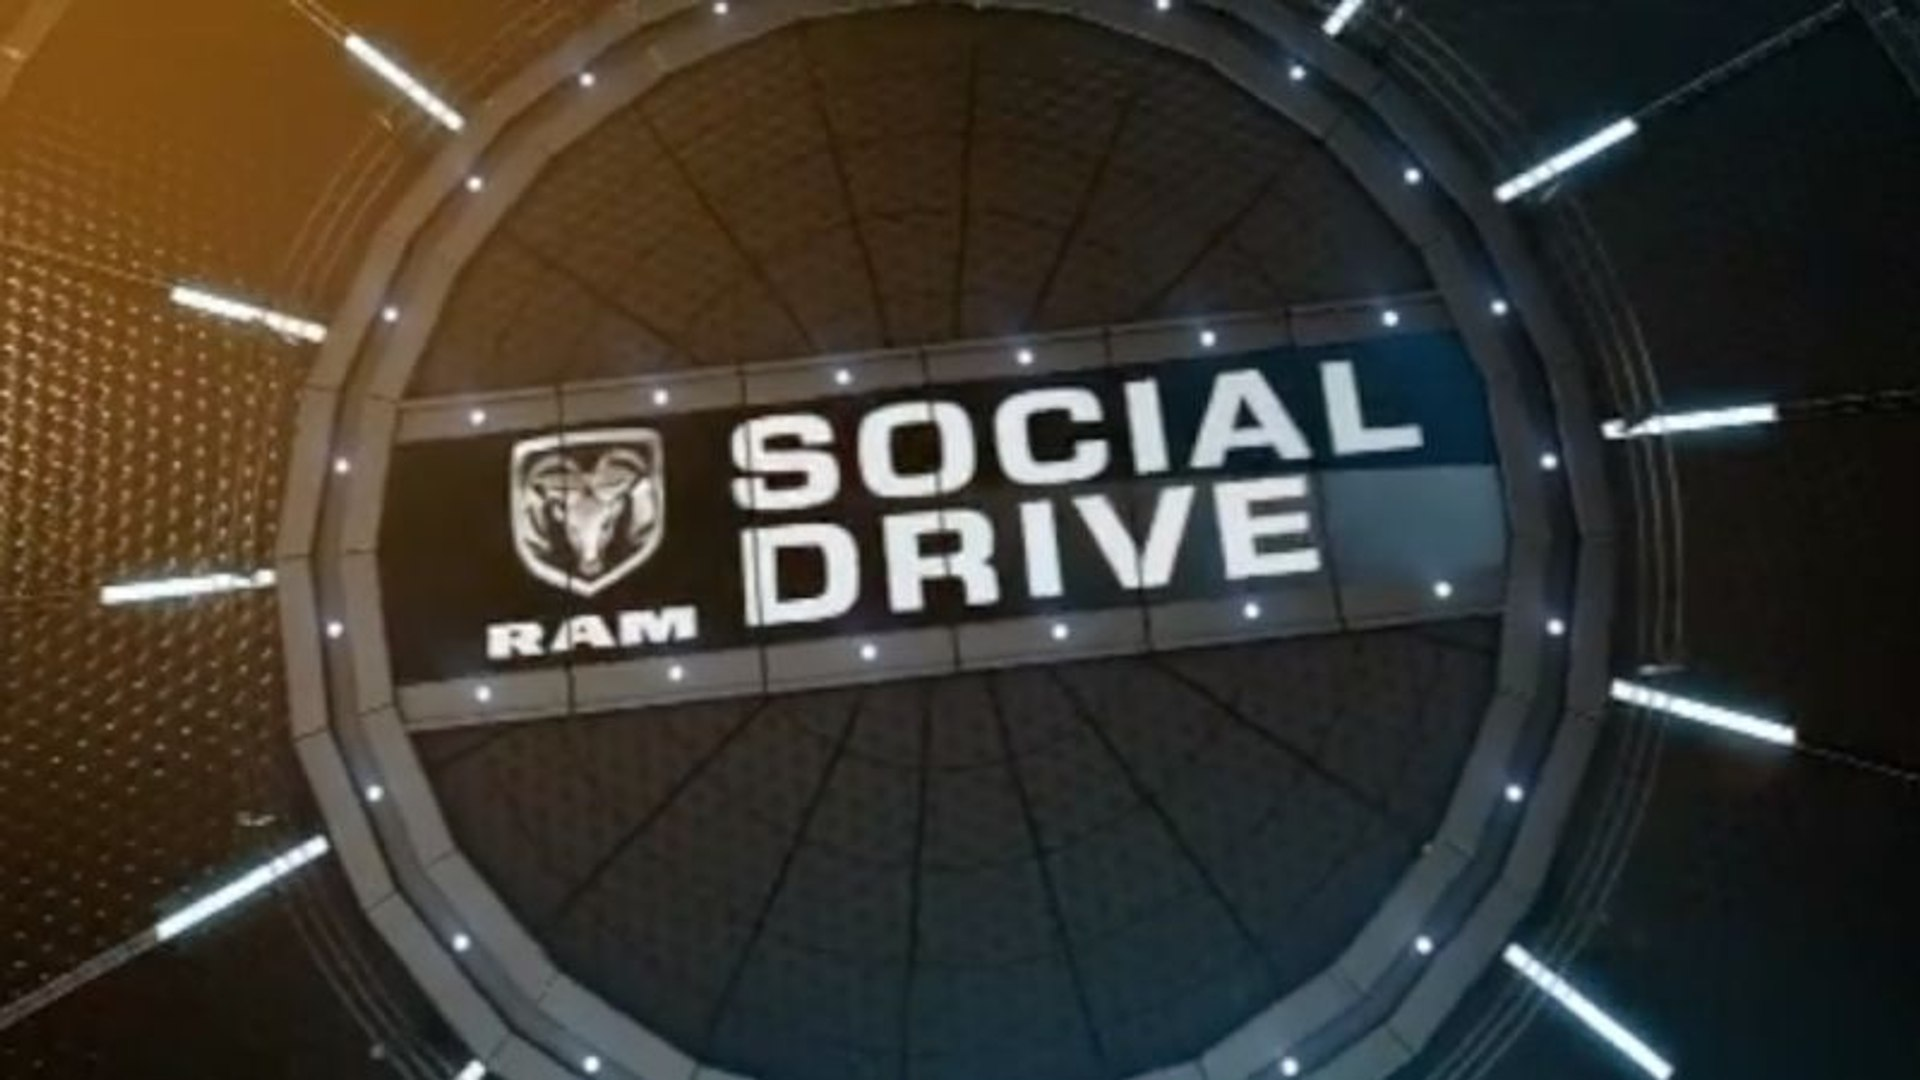 Ram Social Drive: NHL and NFL players in Nutcracker ballets